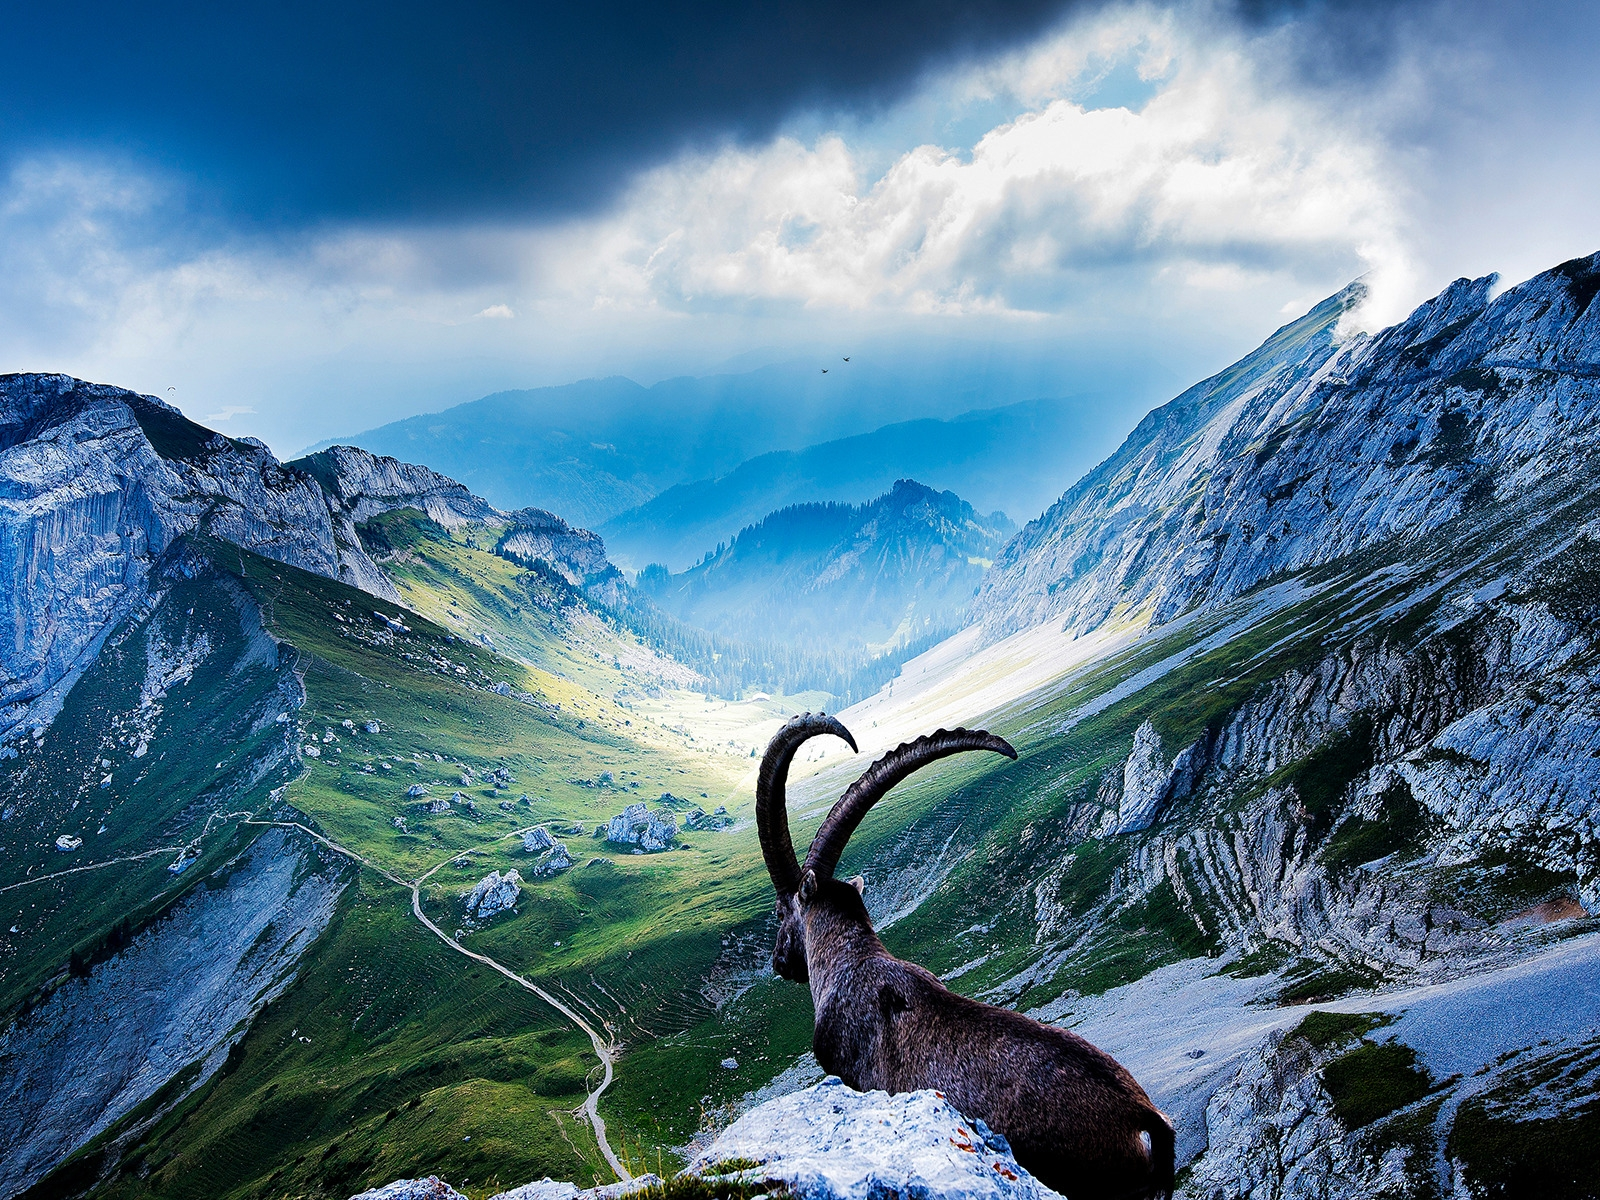 Goat at Mount Pilatus for 1600 x 1200 resolution